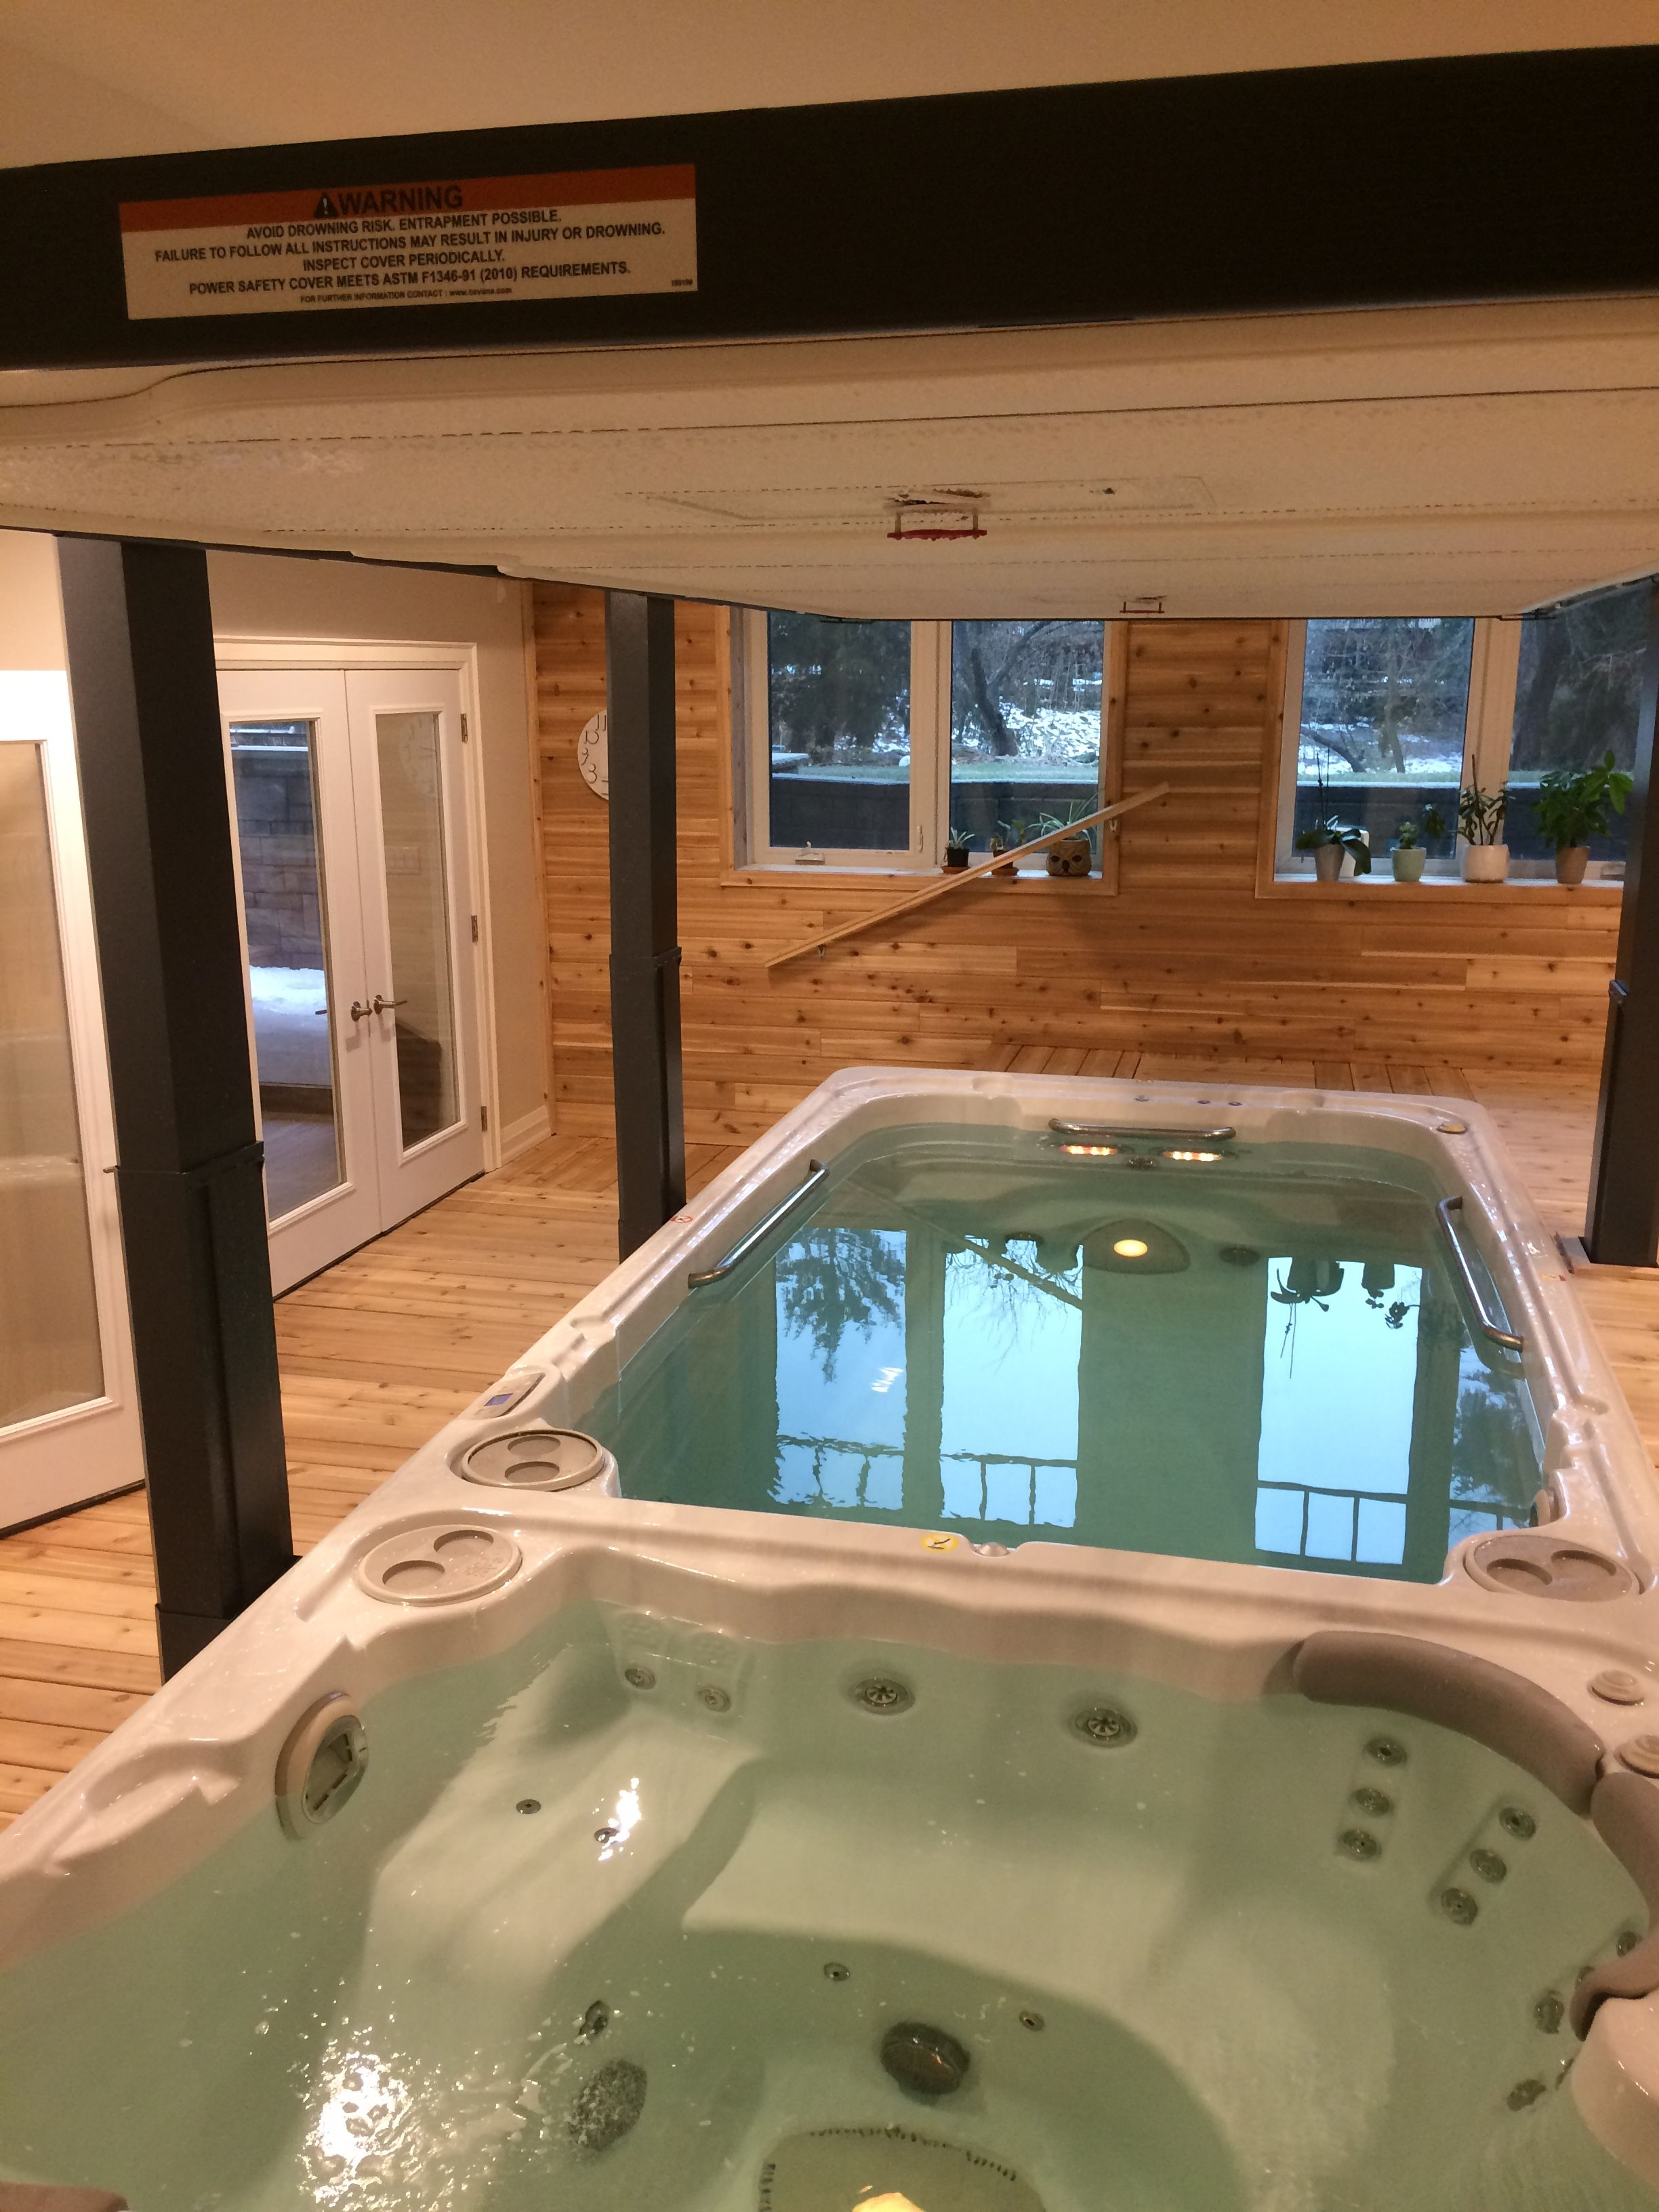 A Beautiful Indoor Swim Spa Install Complete With Automatic Cover